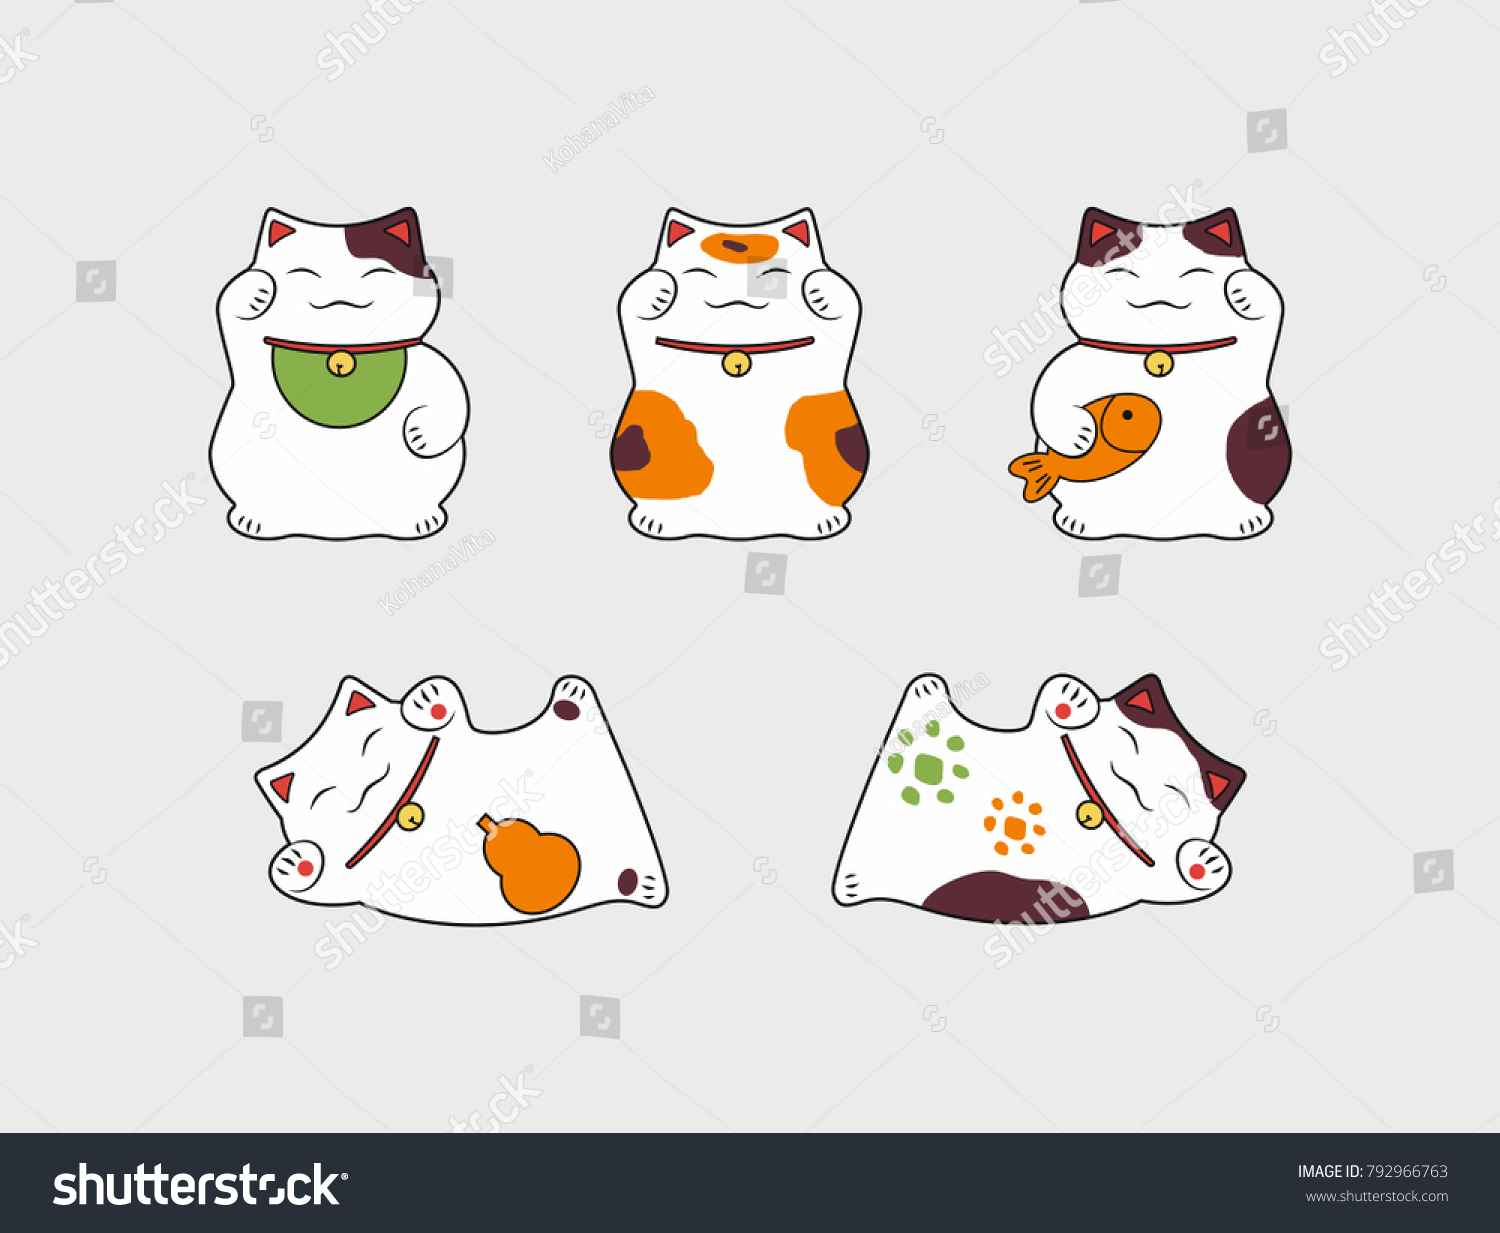 Symbol for good luck image collections symbol and sign ideas thai good luck symbols images symbol and sign ideas set symbol maneki neko attracting cat stock buycottarizona